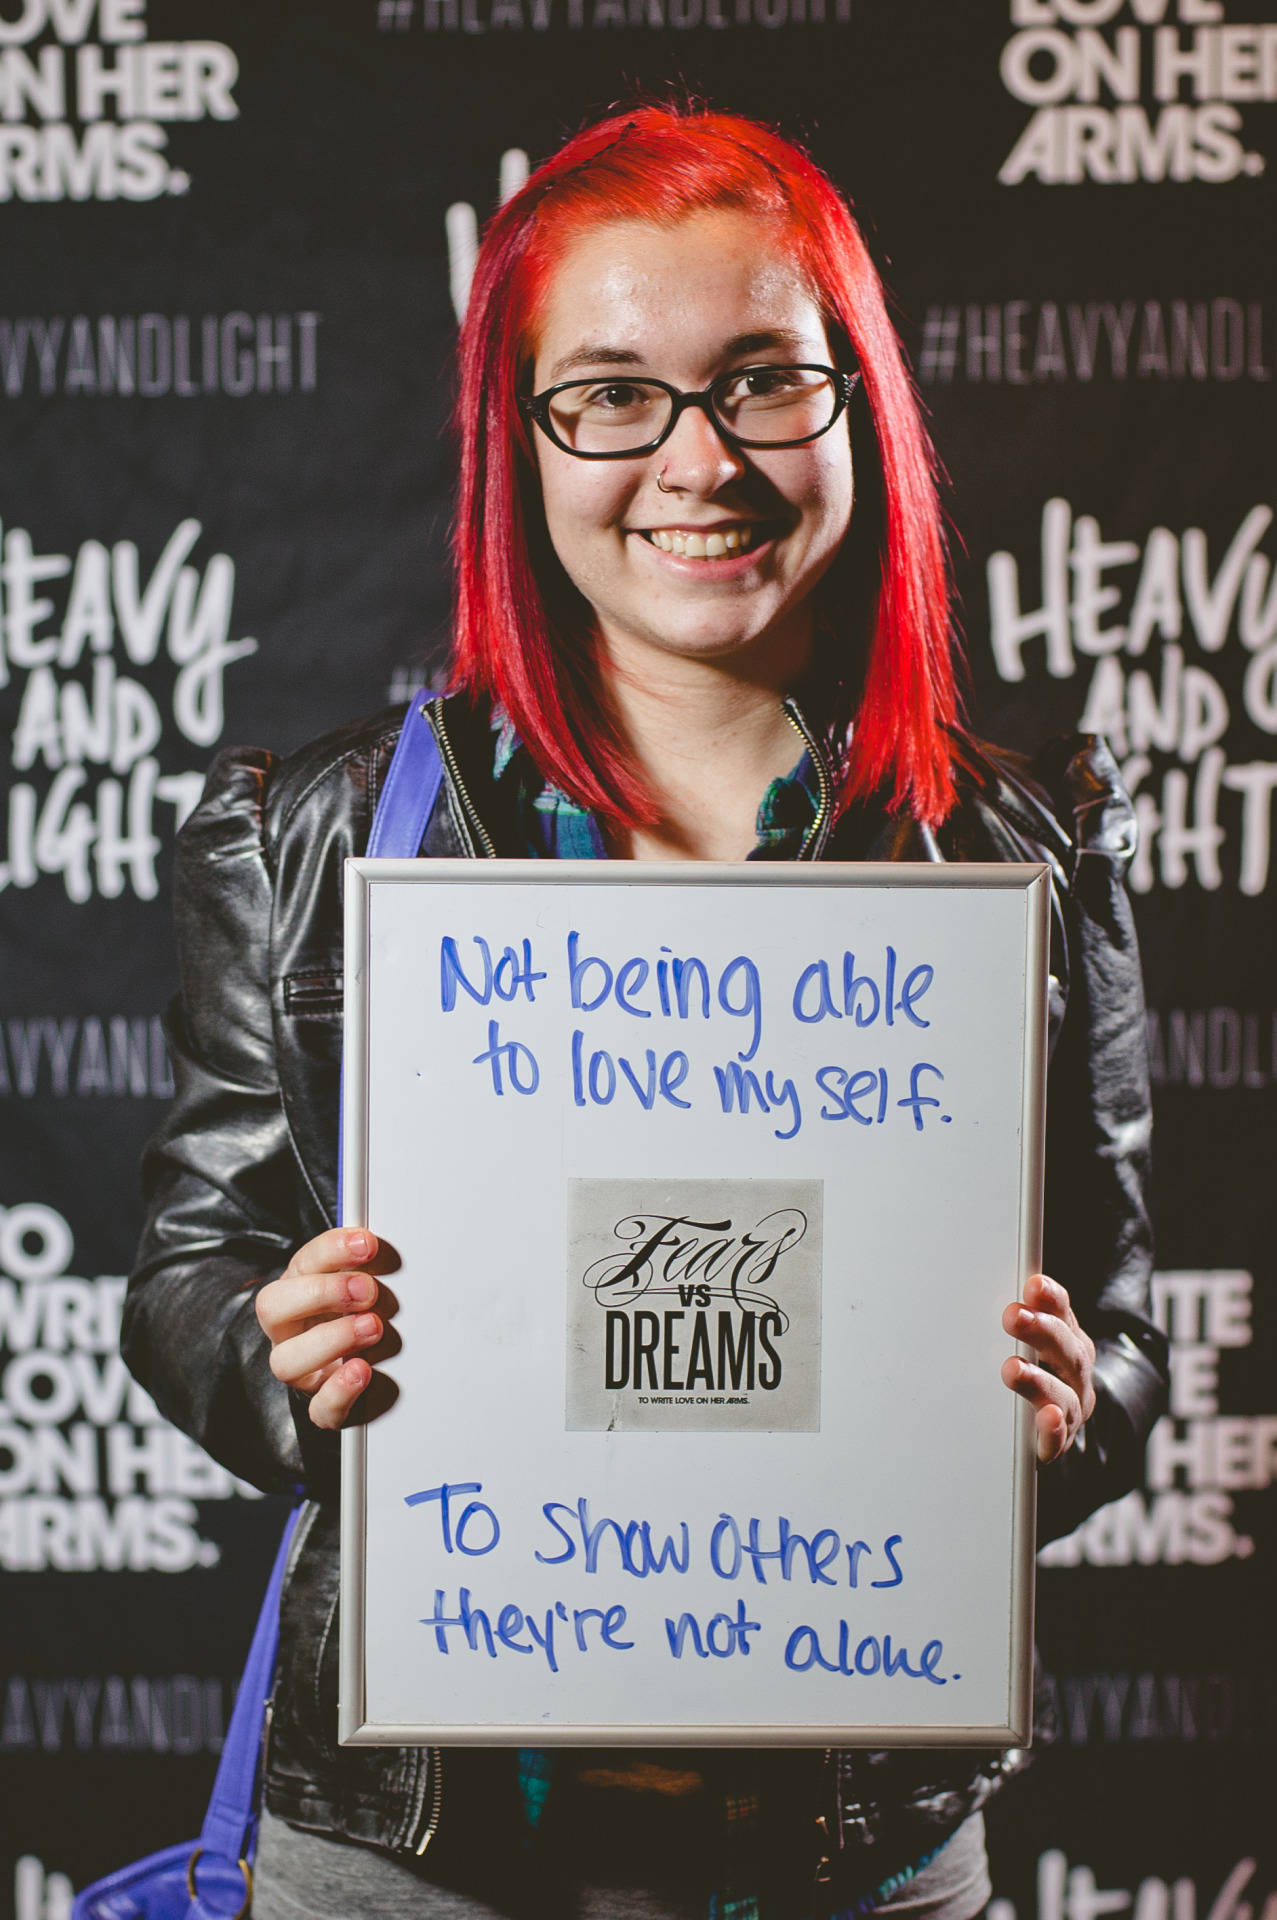 fearsvsdreams:  Fear: Not being able to love myself. | Dream: To show others they're not alone.